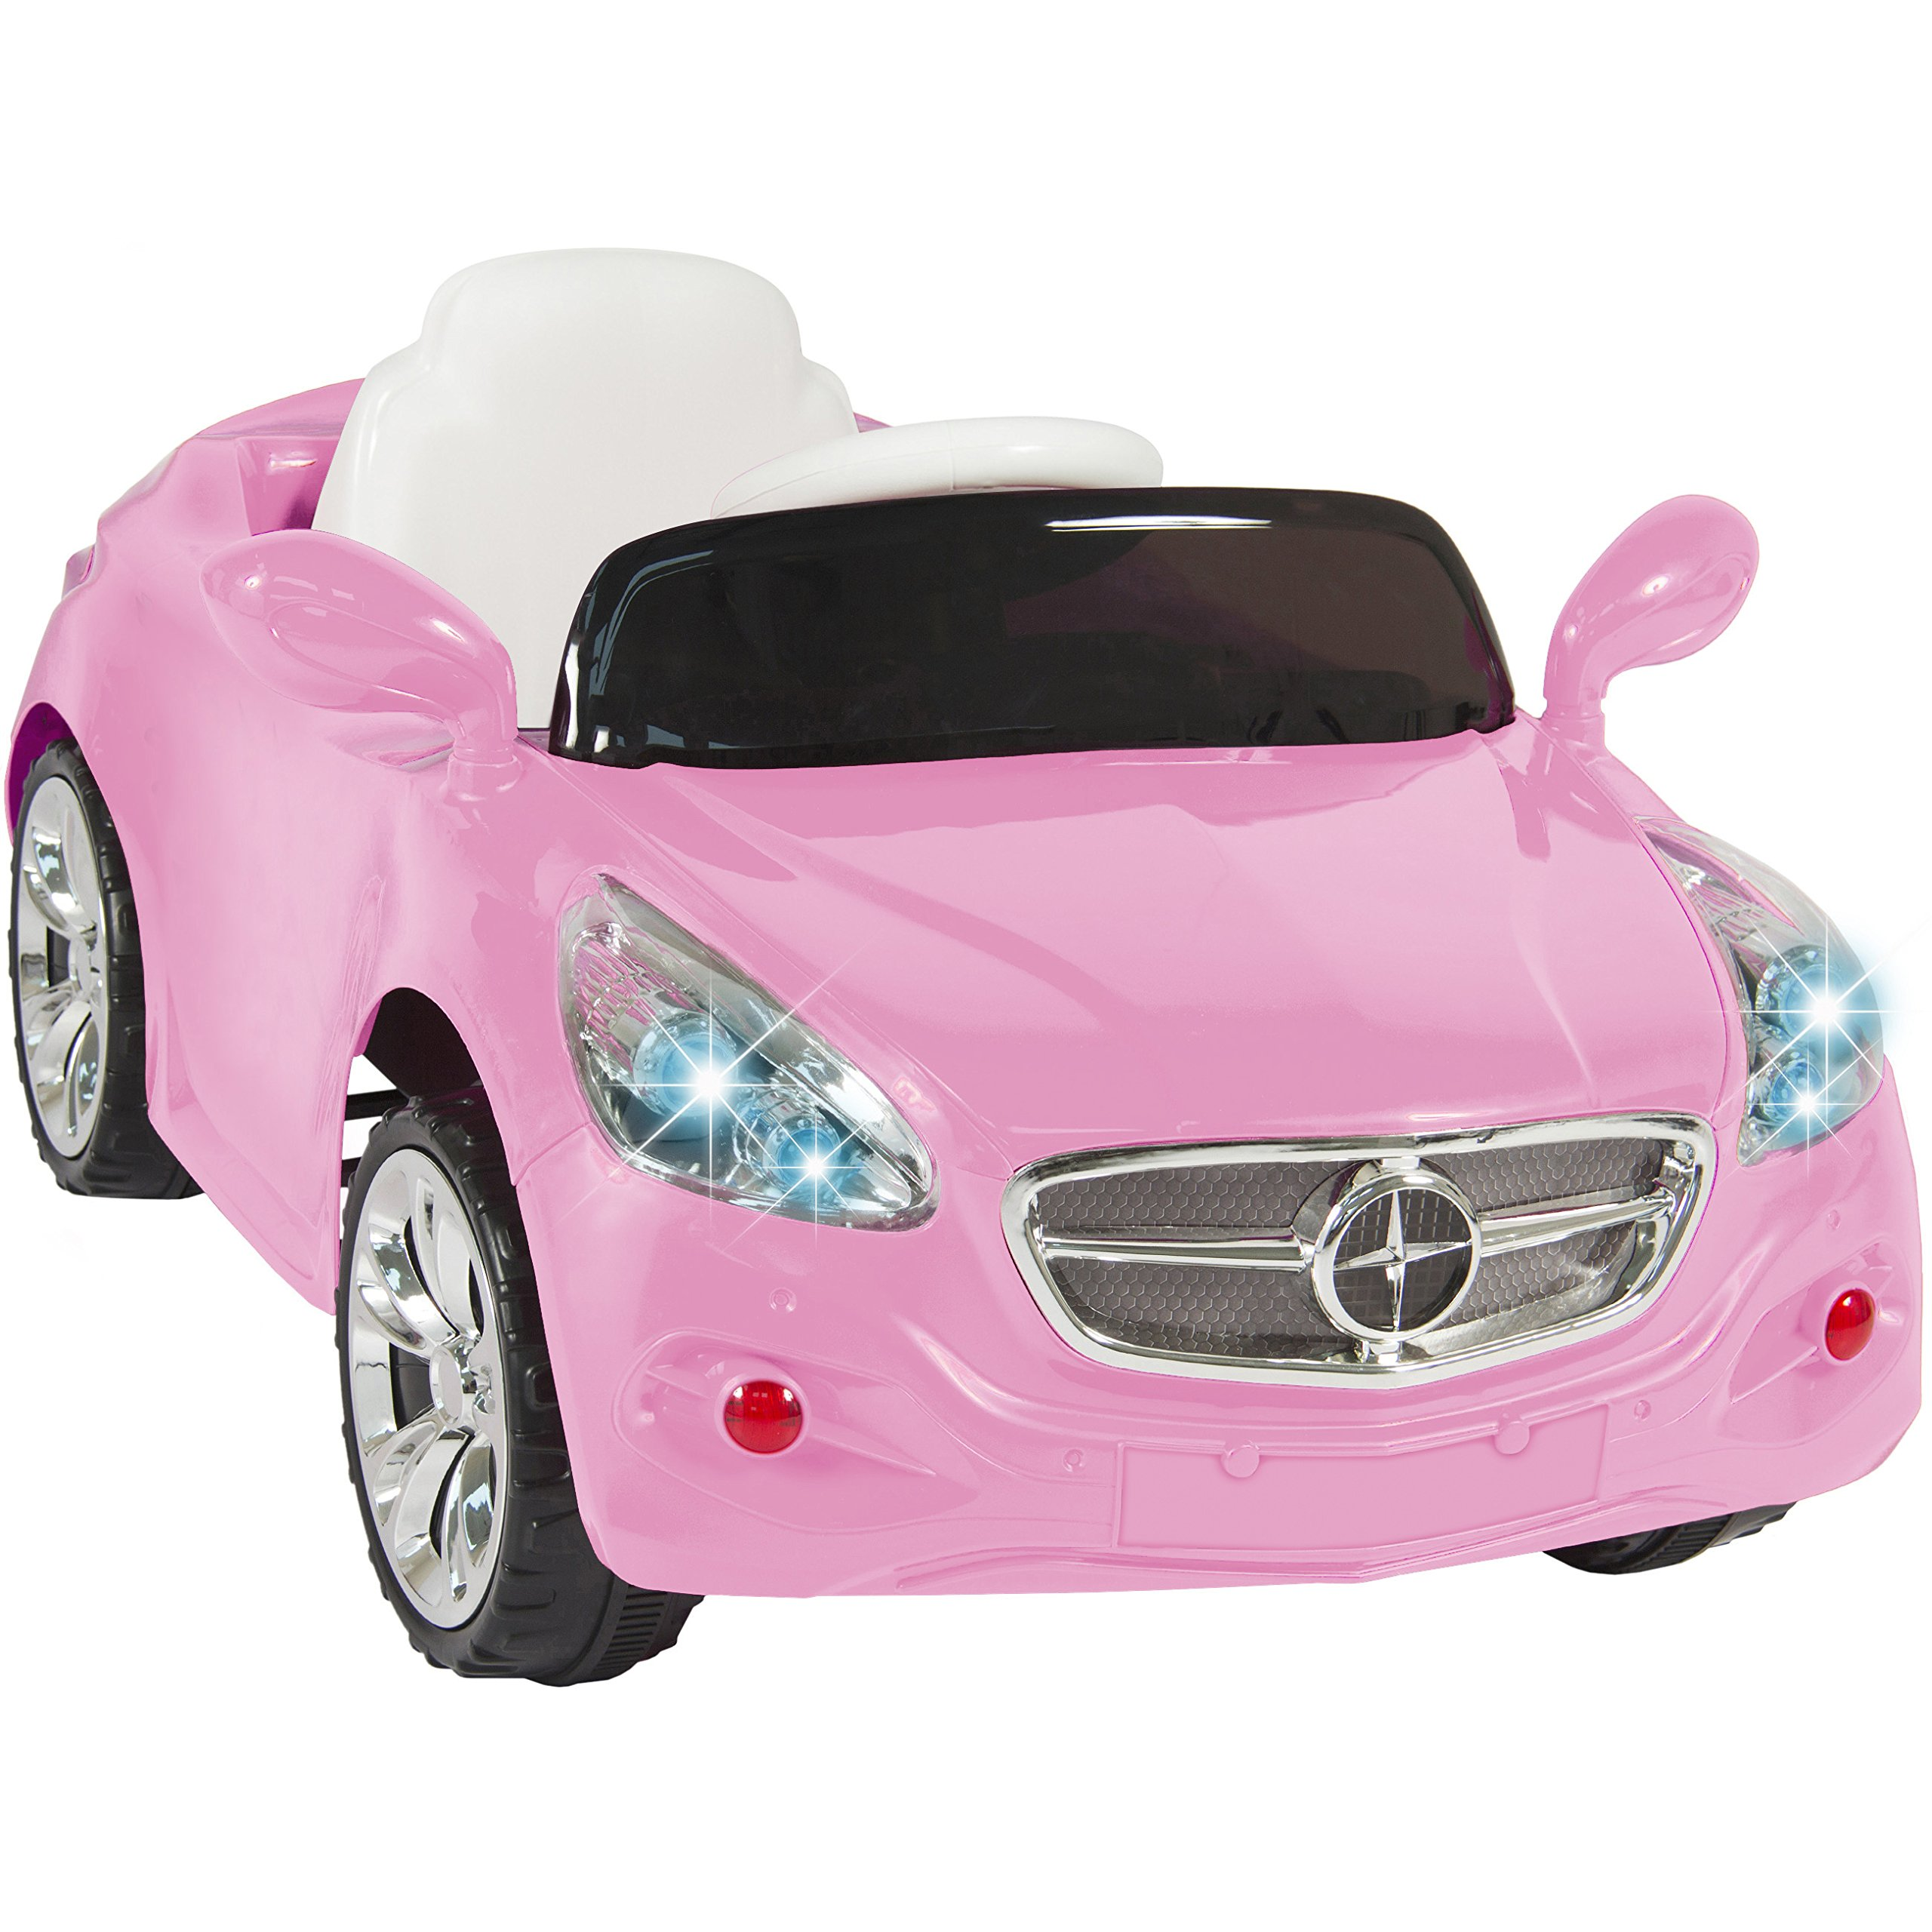 Best Choice Products Kids 12V Electric Power Wheels RC Car Ride On with Radio & MP3, Pink by Best Choice Products